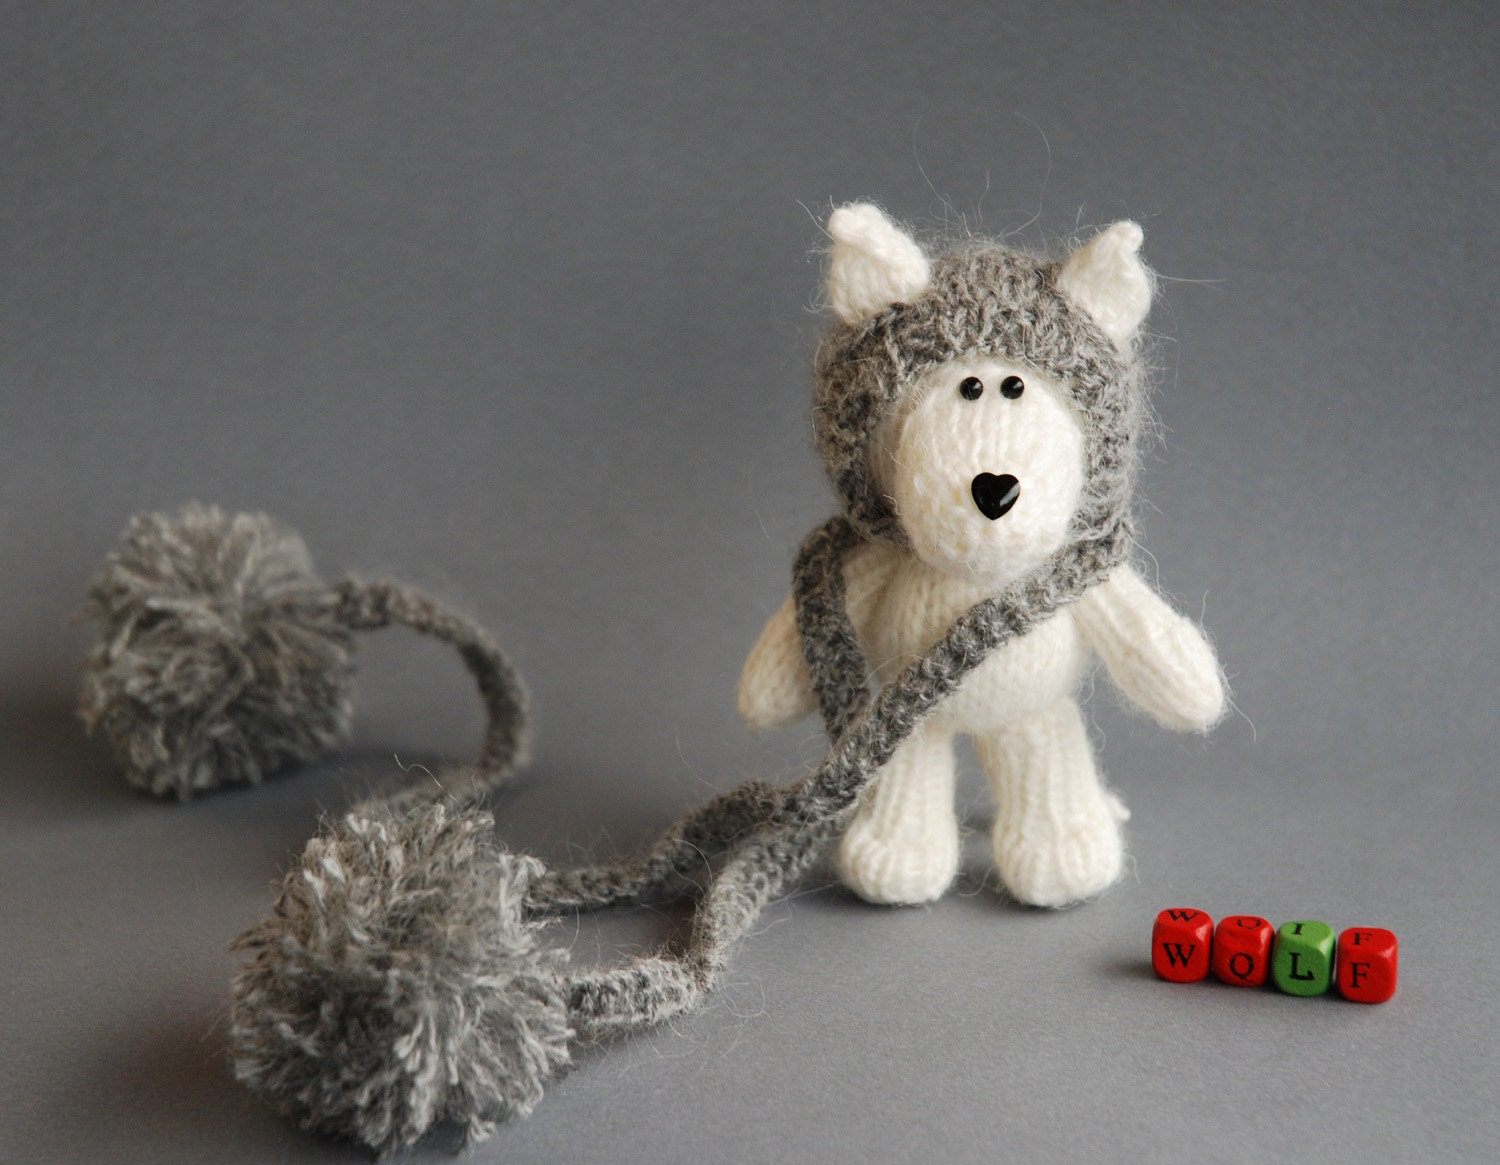 Wolf Knitting Pattern : White Wolf in the gray hat knitting pattern knitted in the